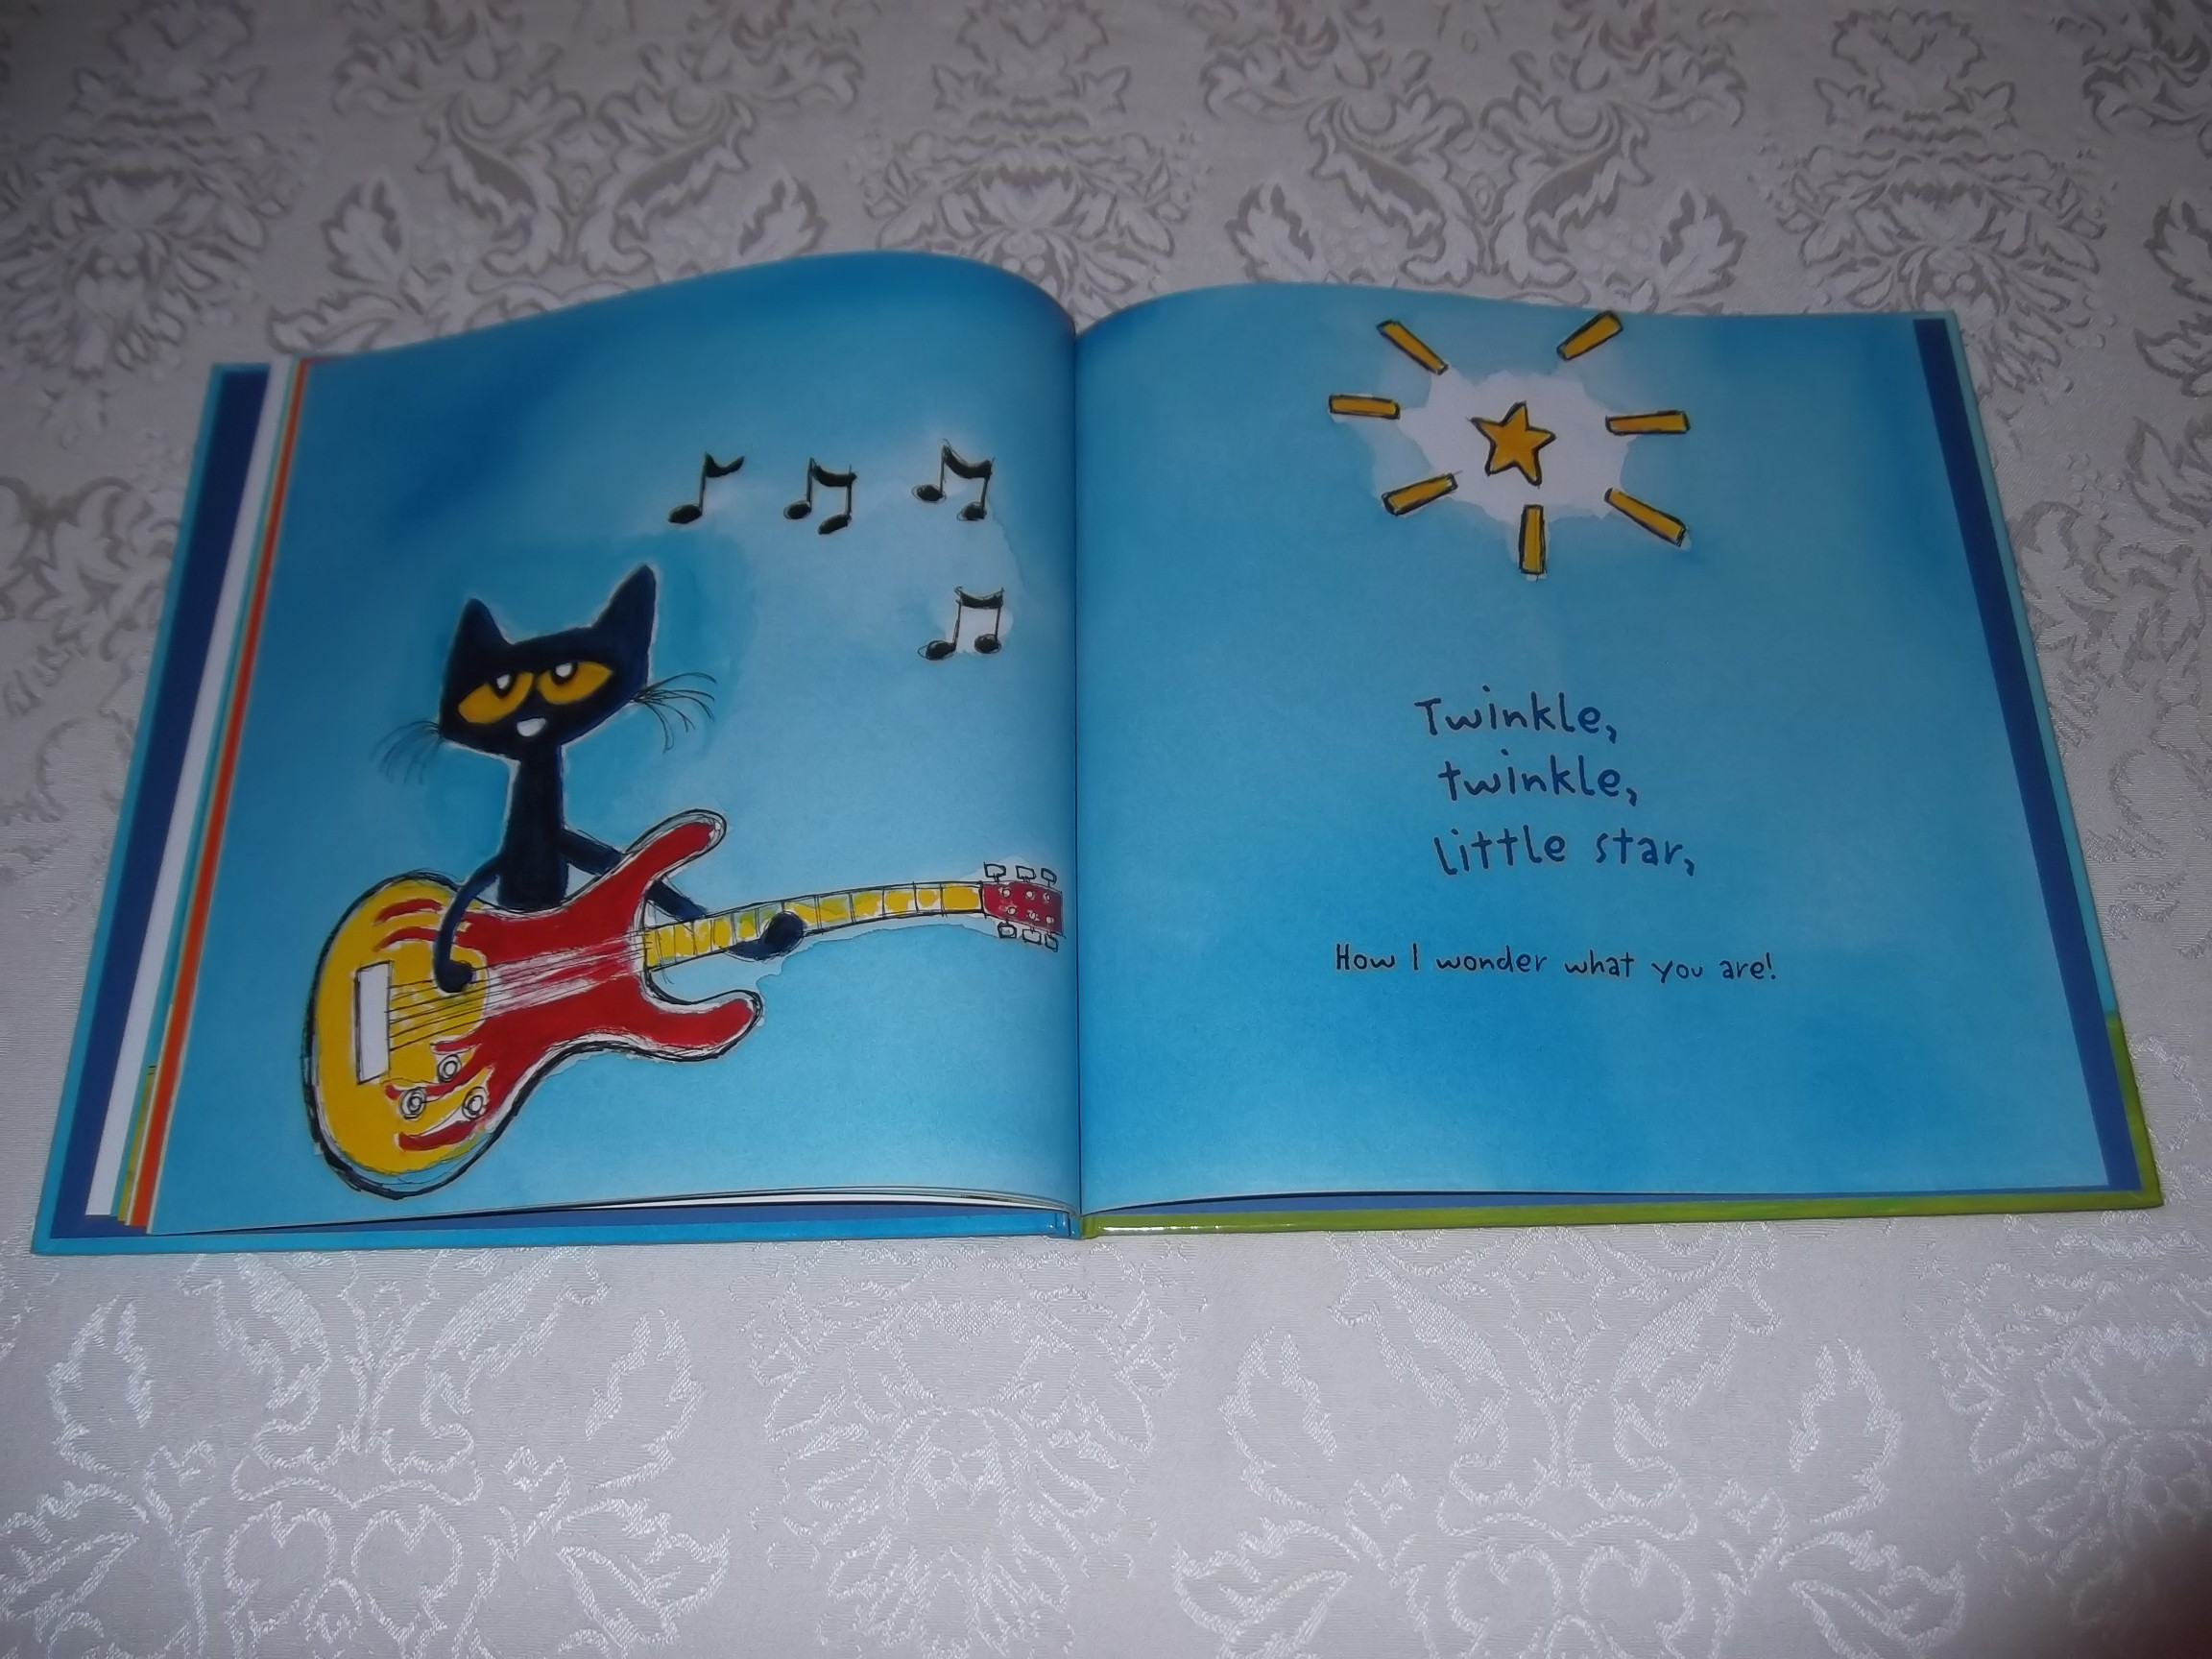 Image 2 of Pete the Cat Twinkle, Twinkle, Little Star James Dean Brand New HC